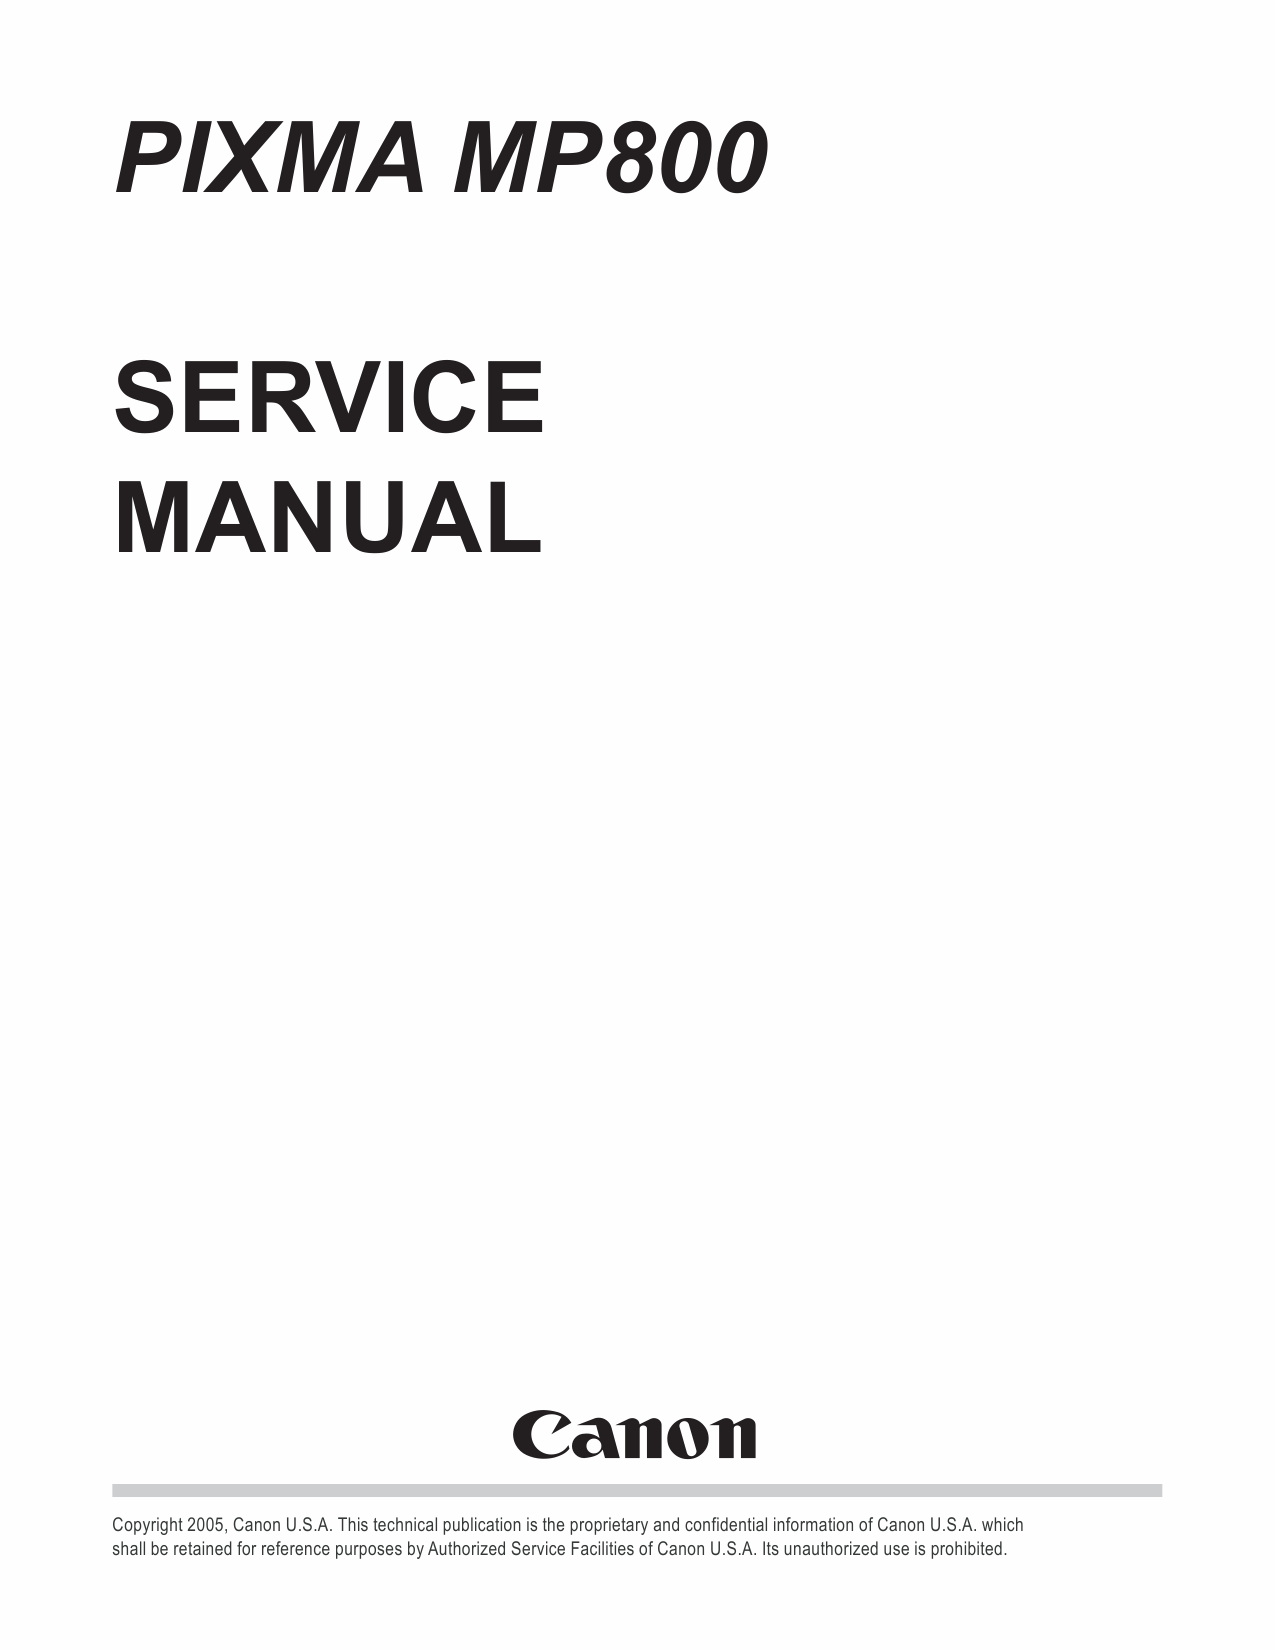 CANON PIXMA MP800 MP 800 SERVICE & REPAIR MANUAL +PARTS